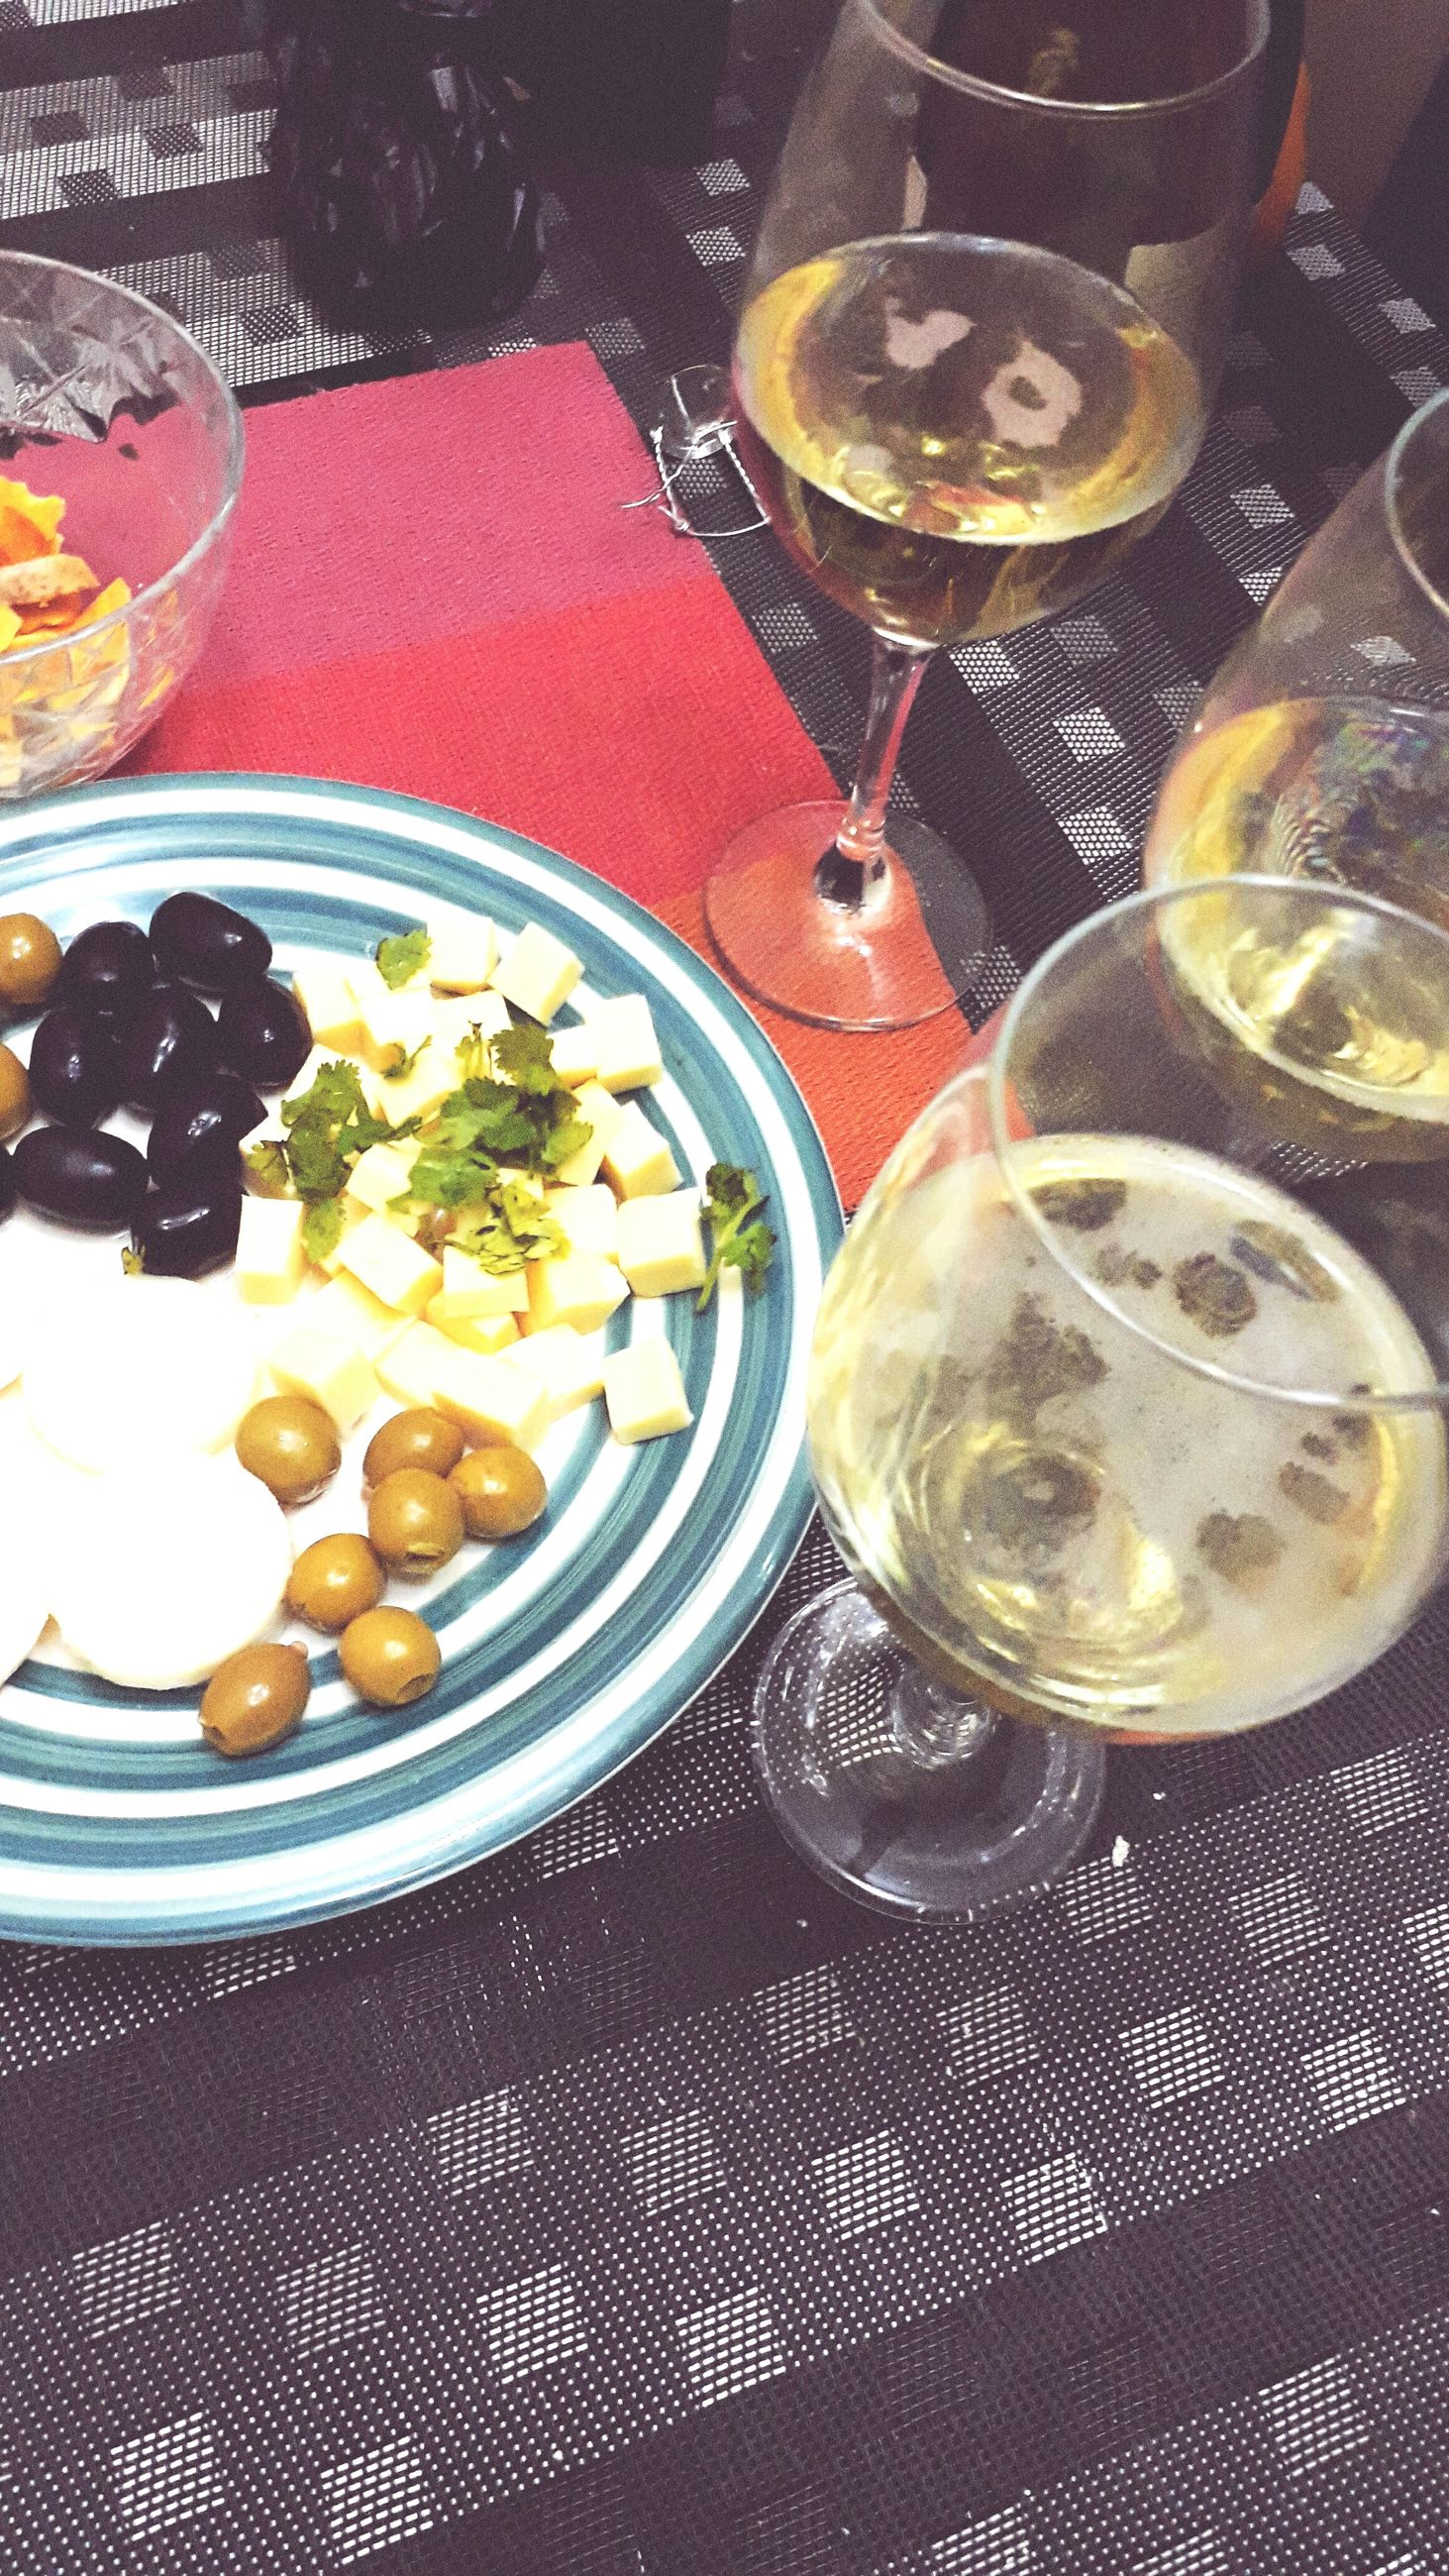 food and drink, drink, table, drinking glass, refreshment, alcohol, indoors, no people, freshness, plate, healthy eating, food, high angle view, wineglass, serving size, tablecloth, wine, day, ready-to-eat, close-up